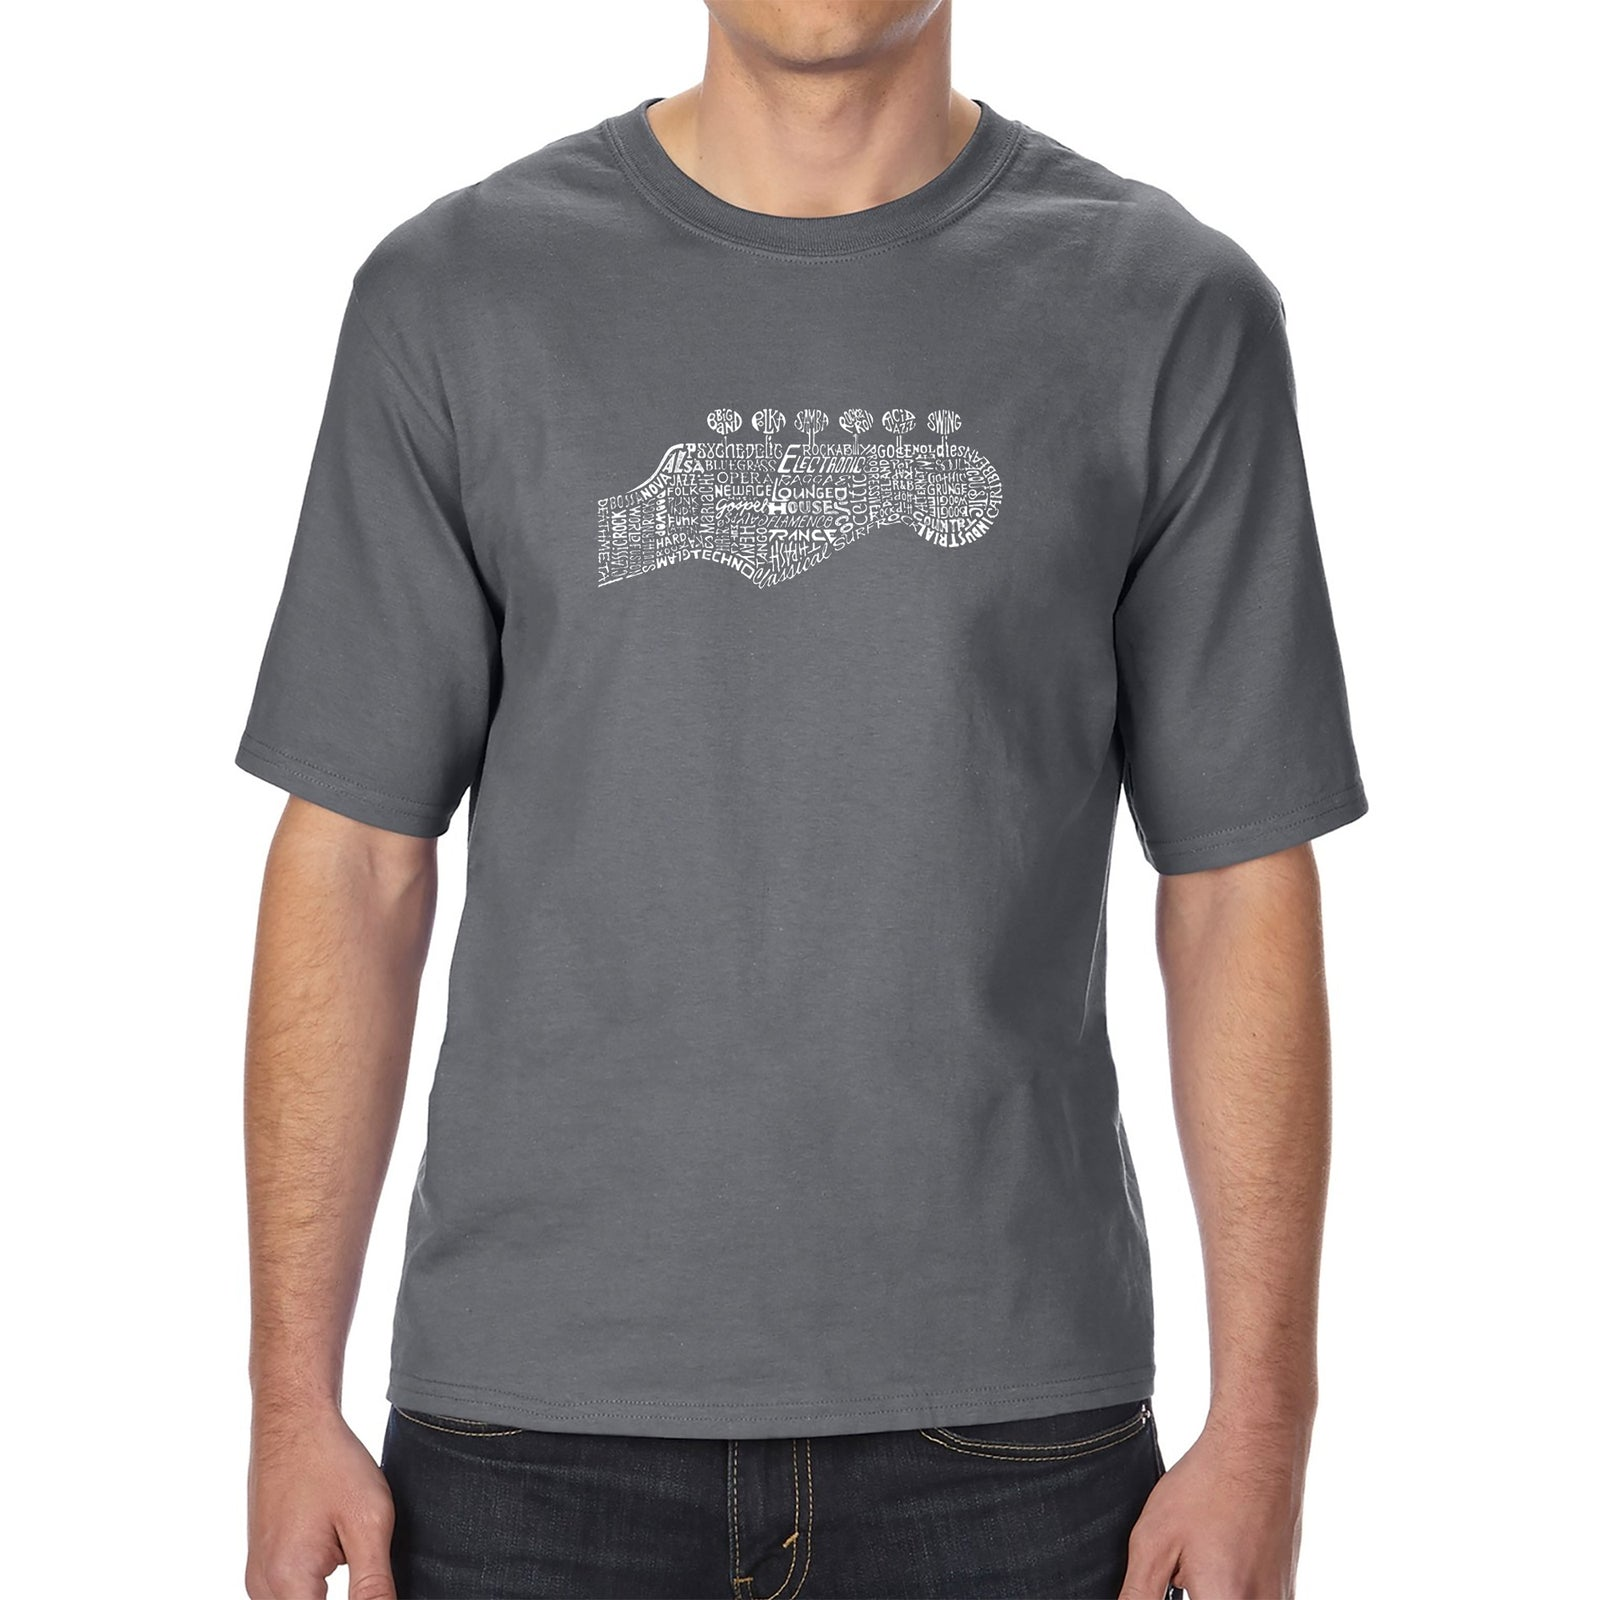 Men's Tall and Long Word Art T-shirt - Guitar Head